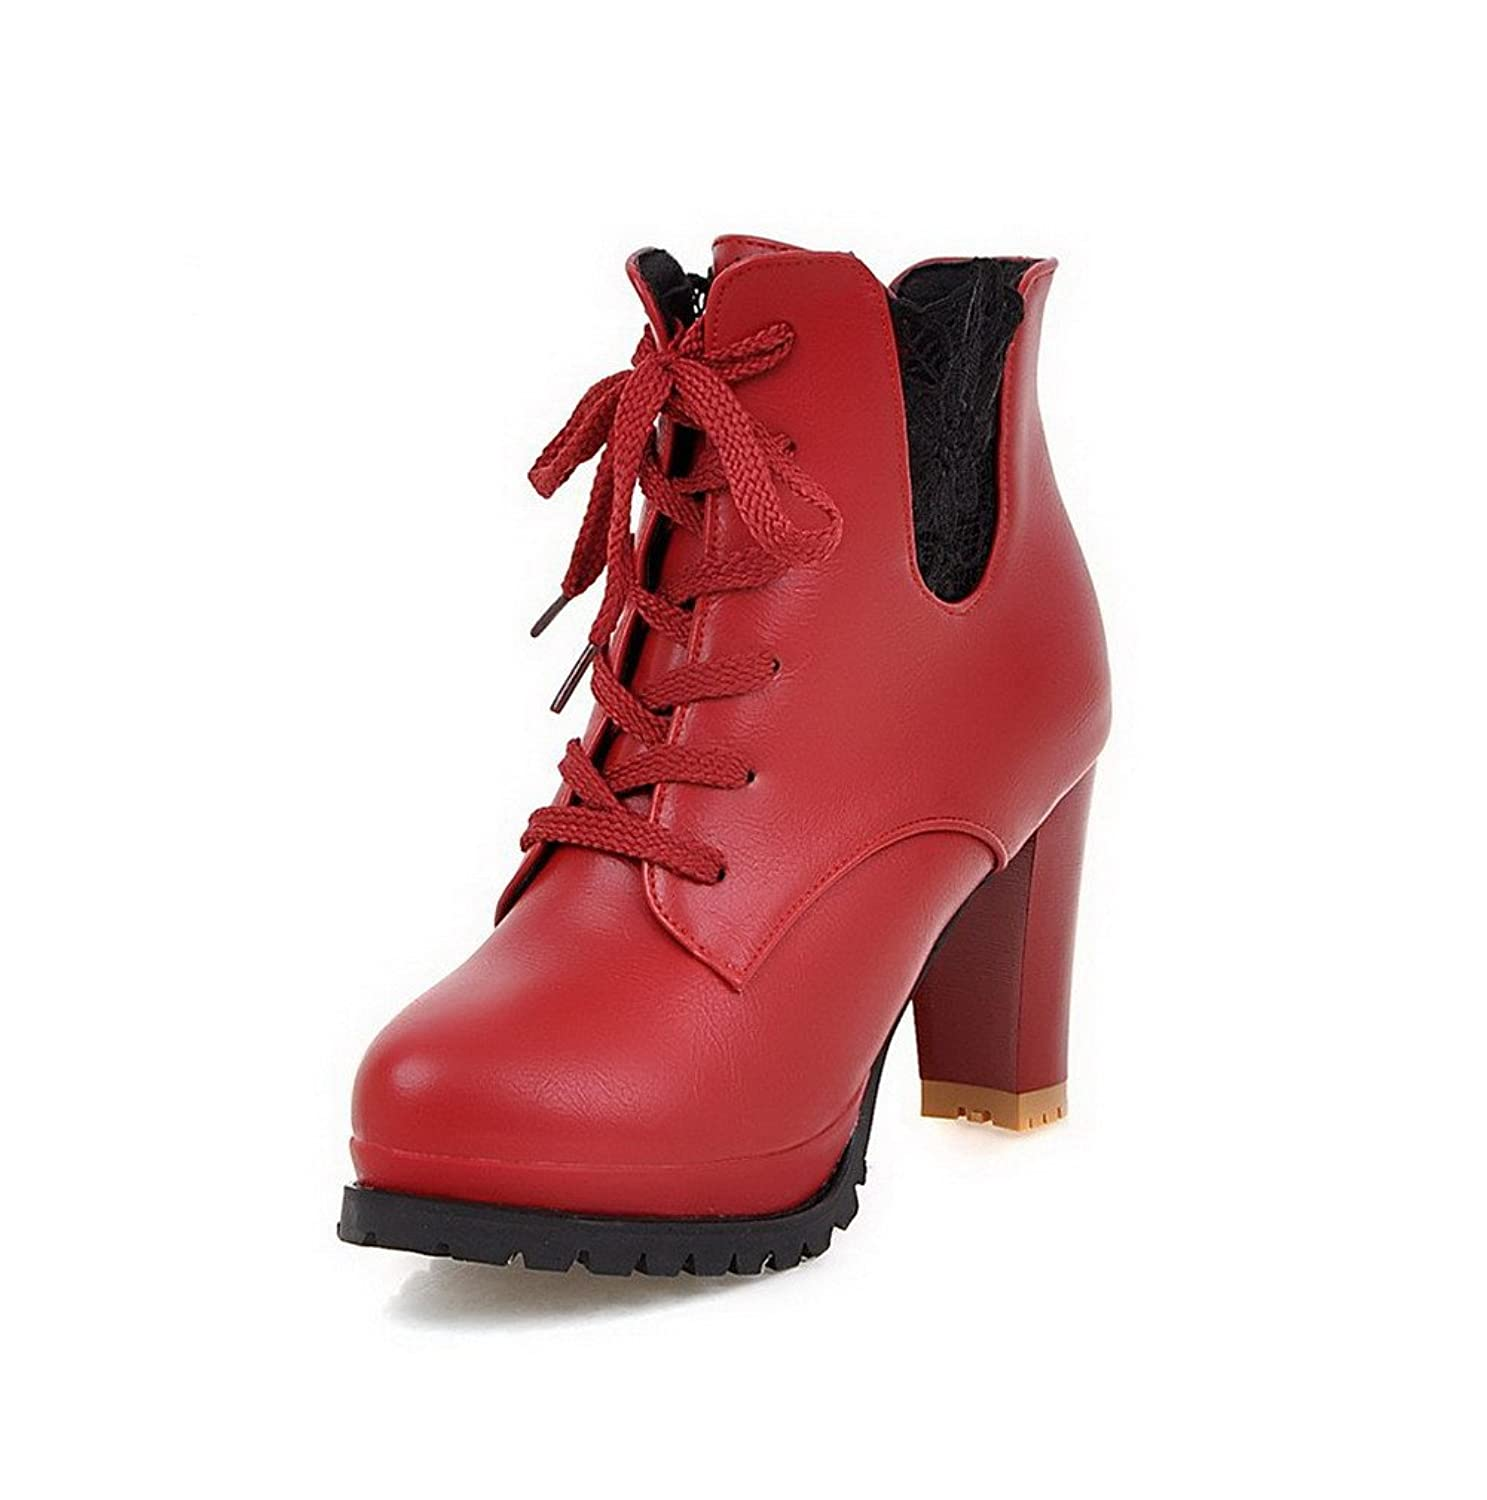 AllhqFashion Women's Low-top Solid Lace-up Round Closed Toe High-Heels Boots